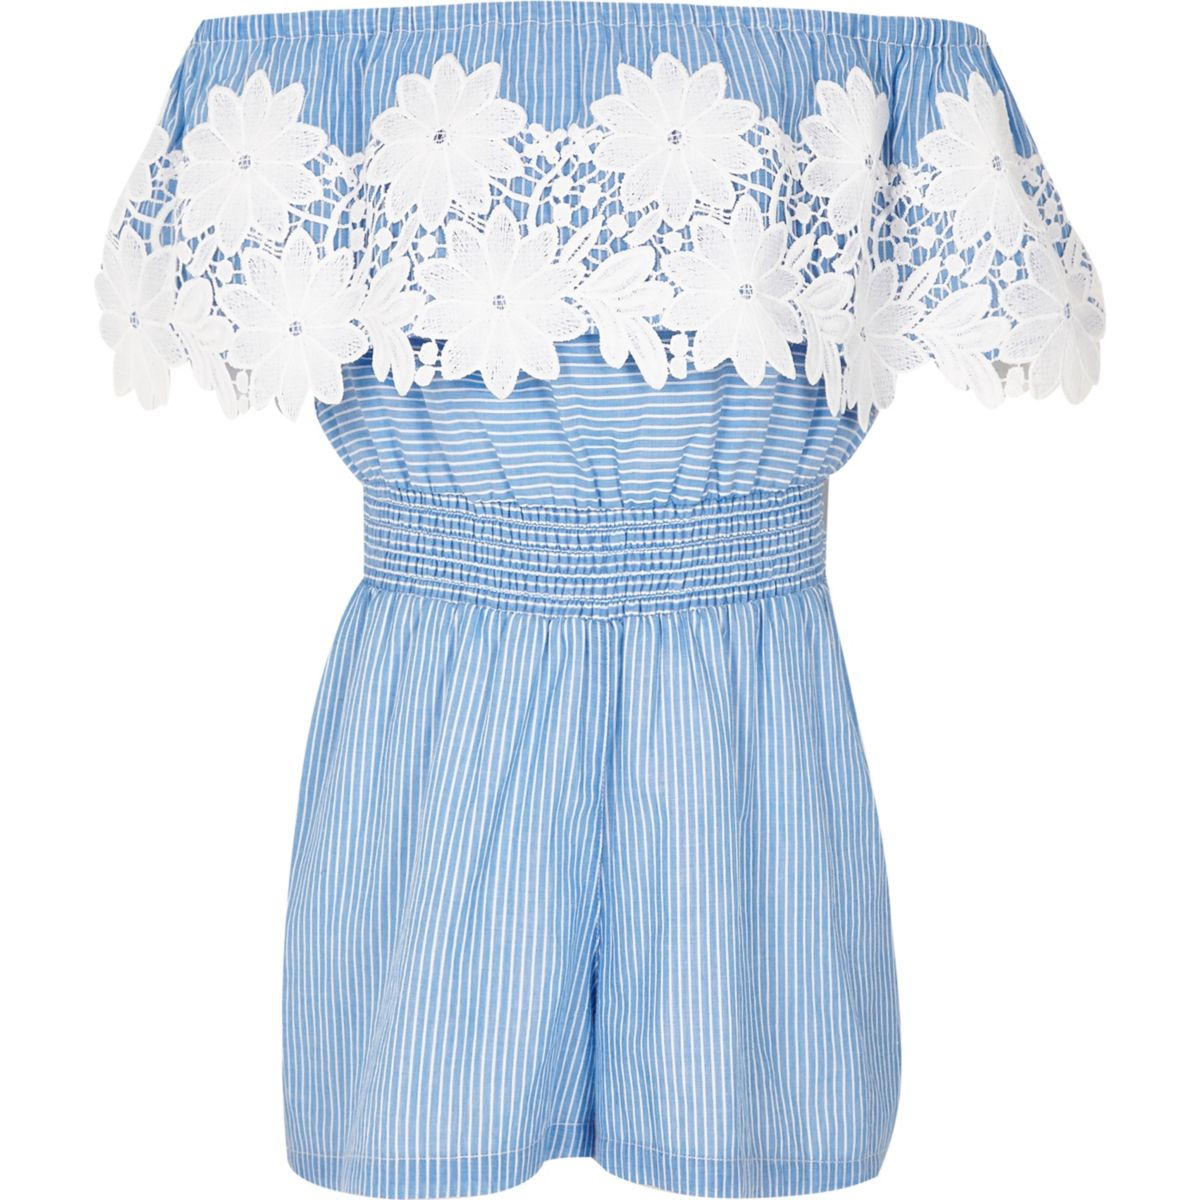 Girls blue stripe lace bardot romper